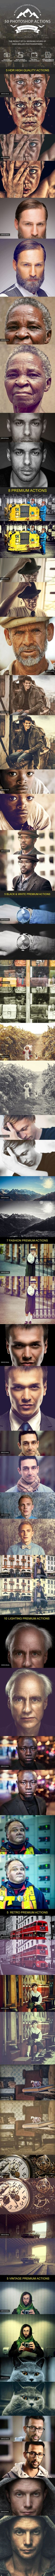 50 Photoshop Actions #photoeffect Download: http://graphicriver.net/item/50-photoshop-actions/13936020?ref=ksioks